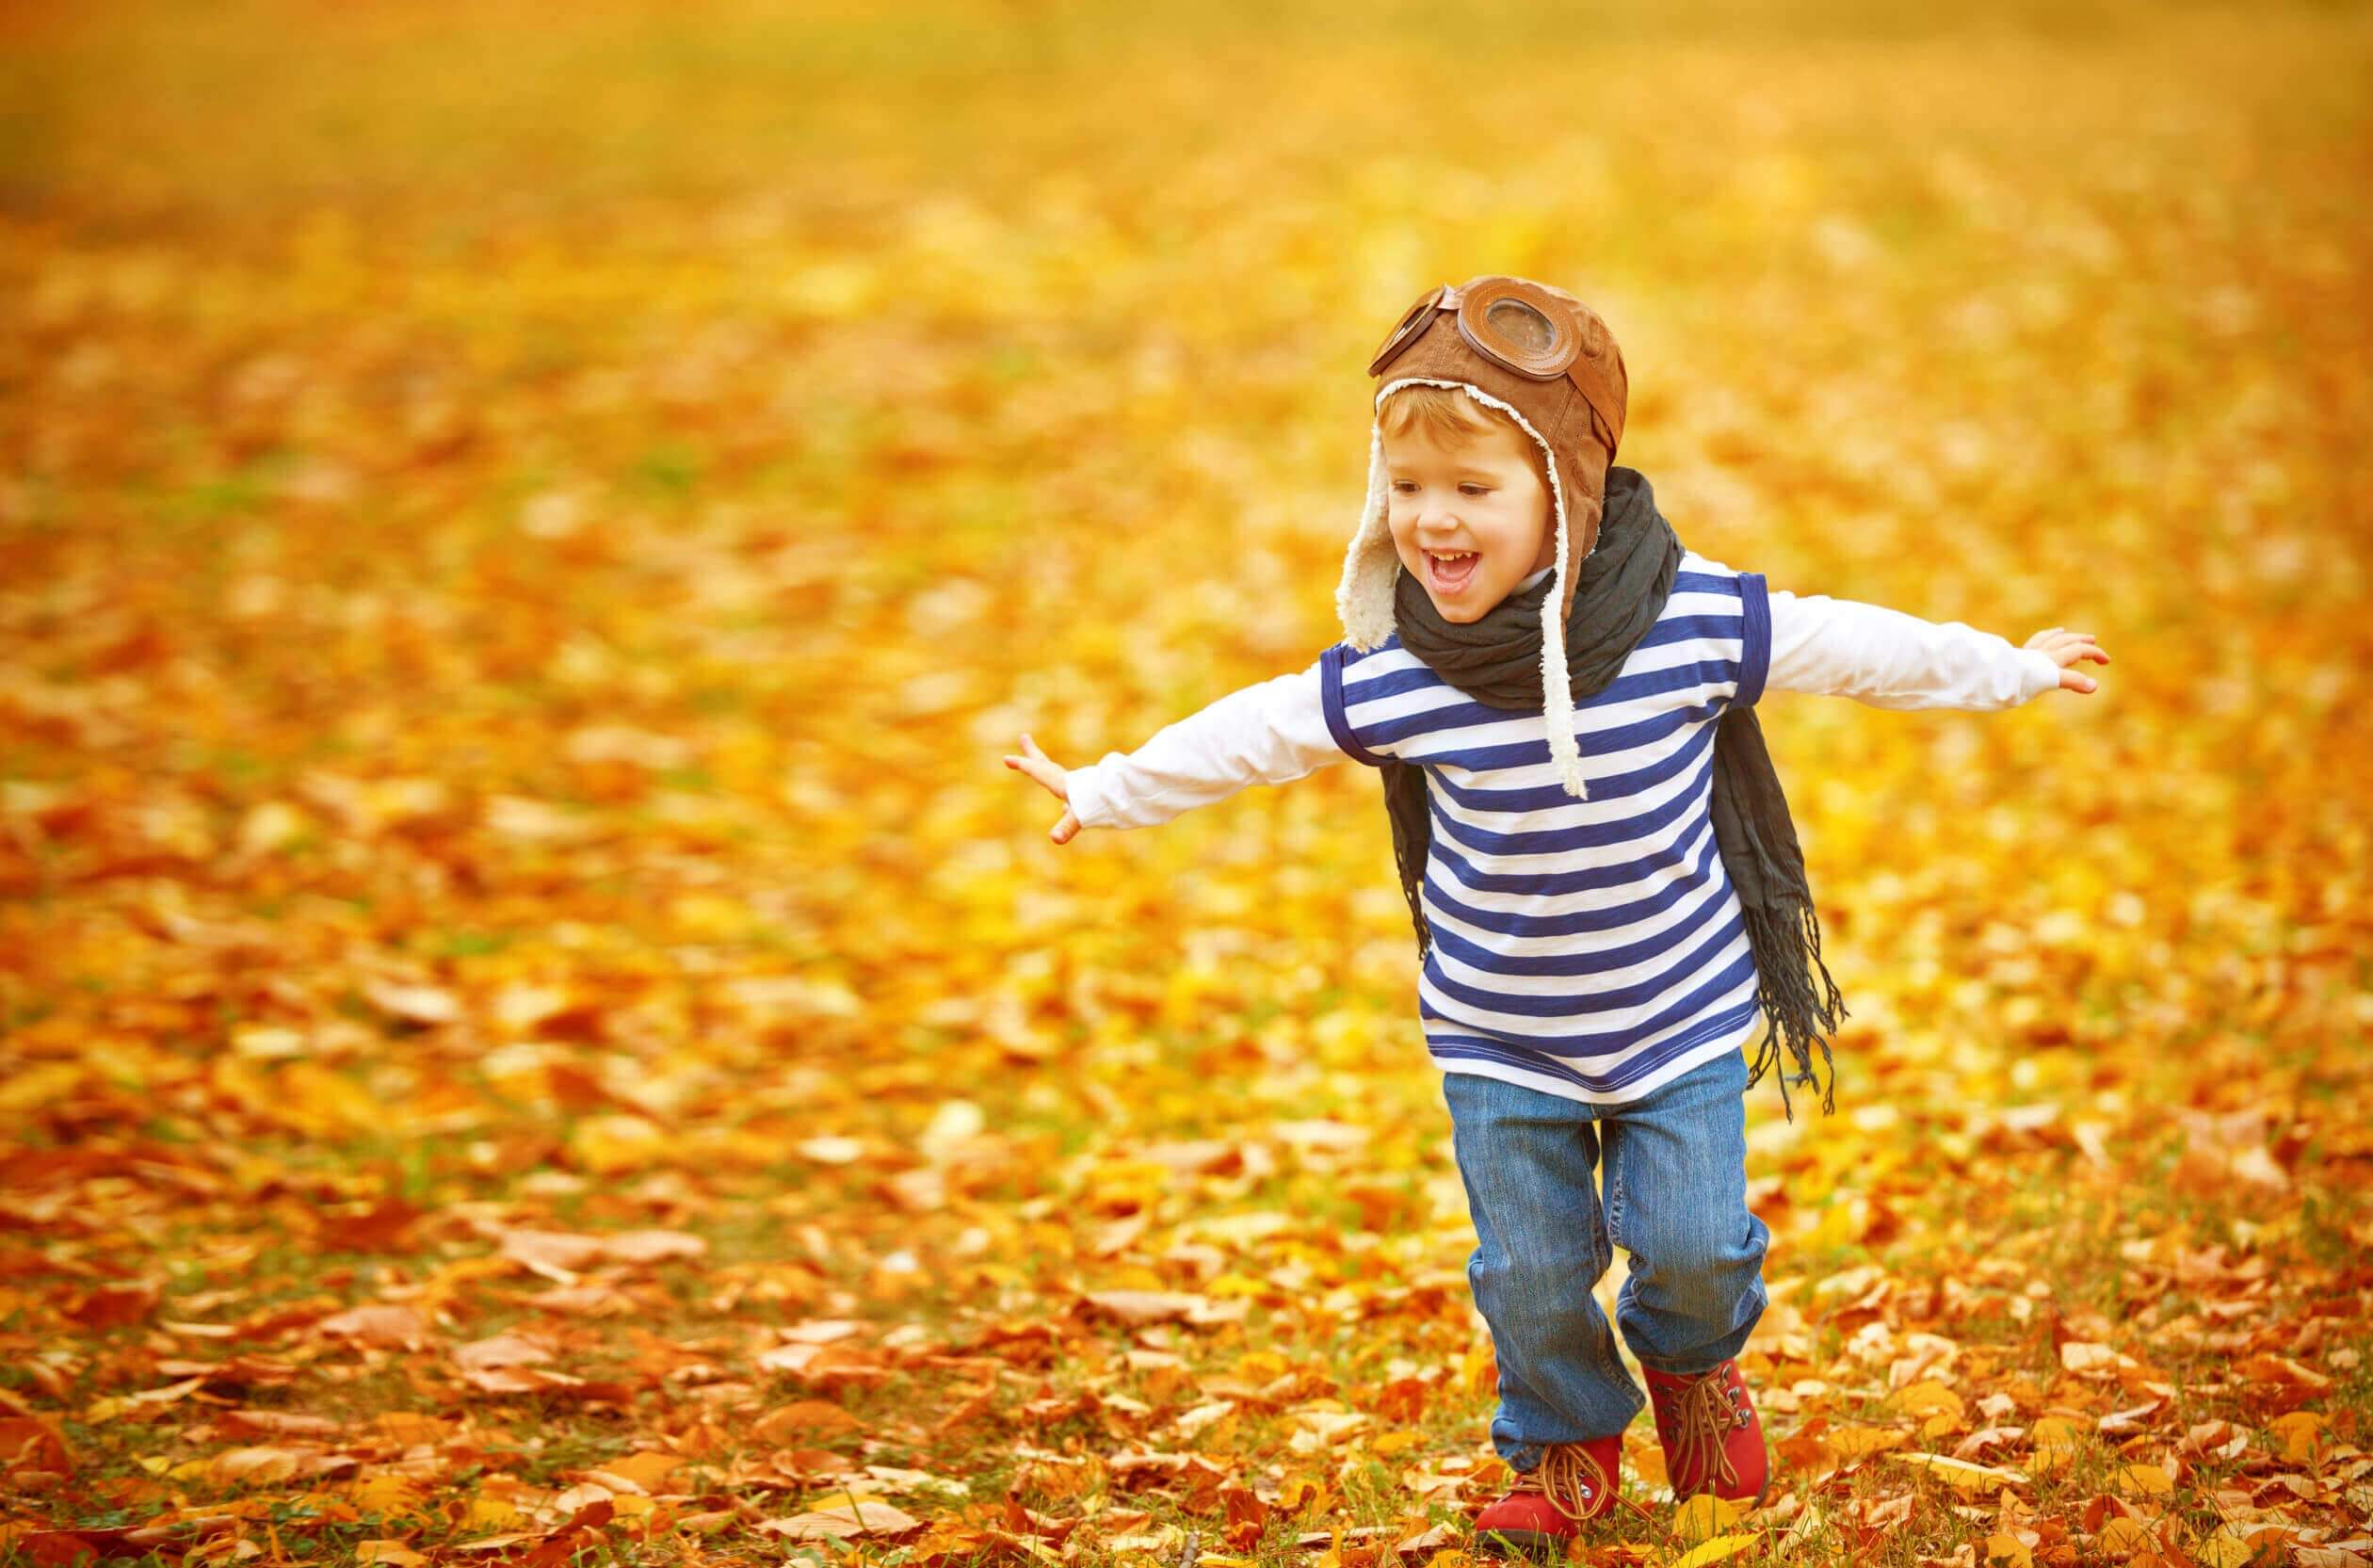 Child with scarf runs through leaves in fall